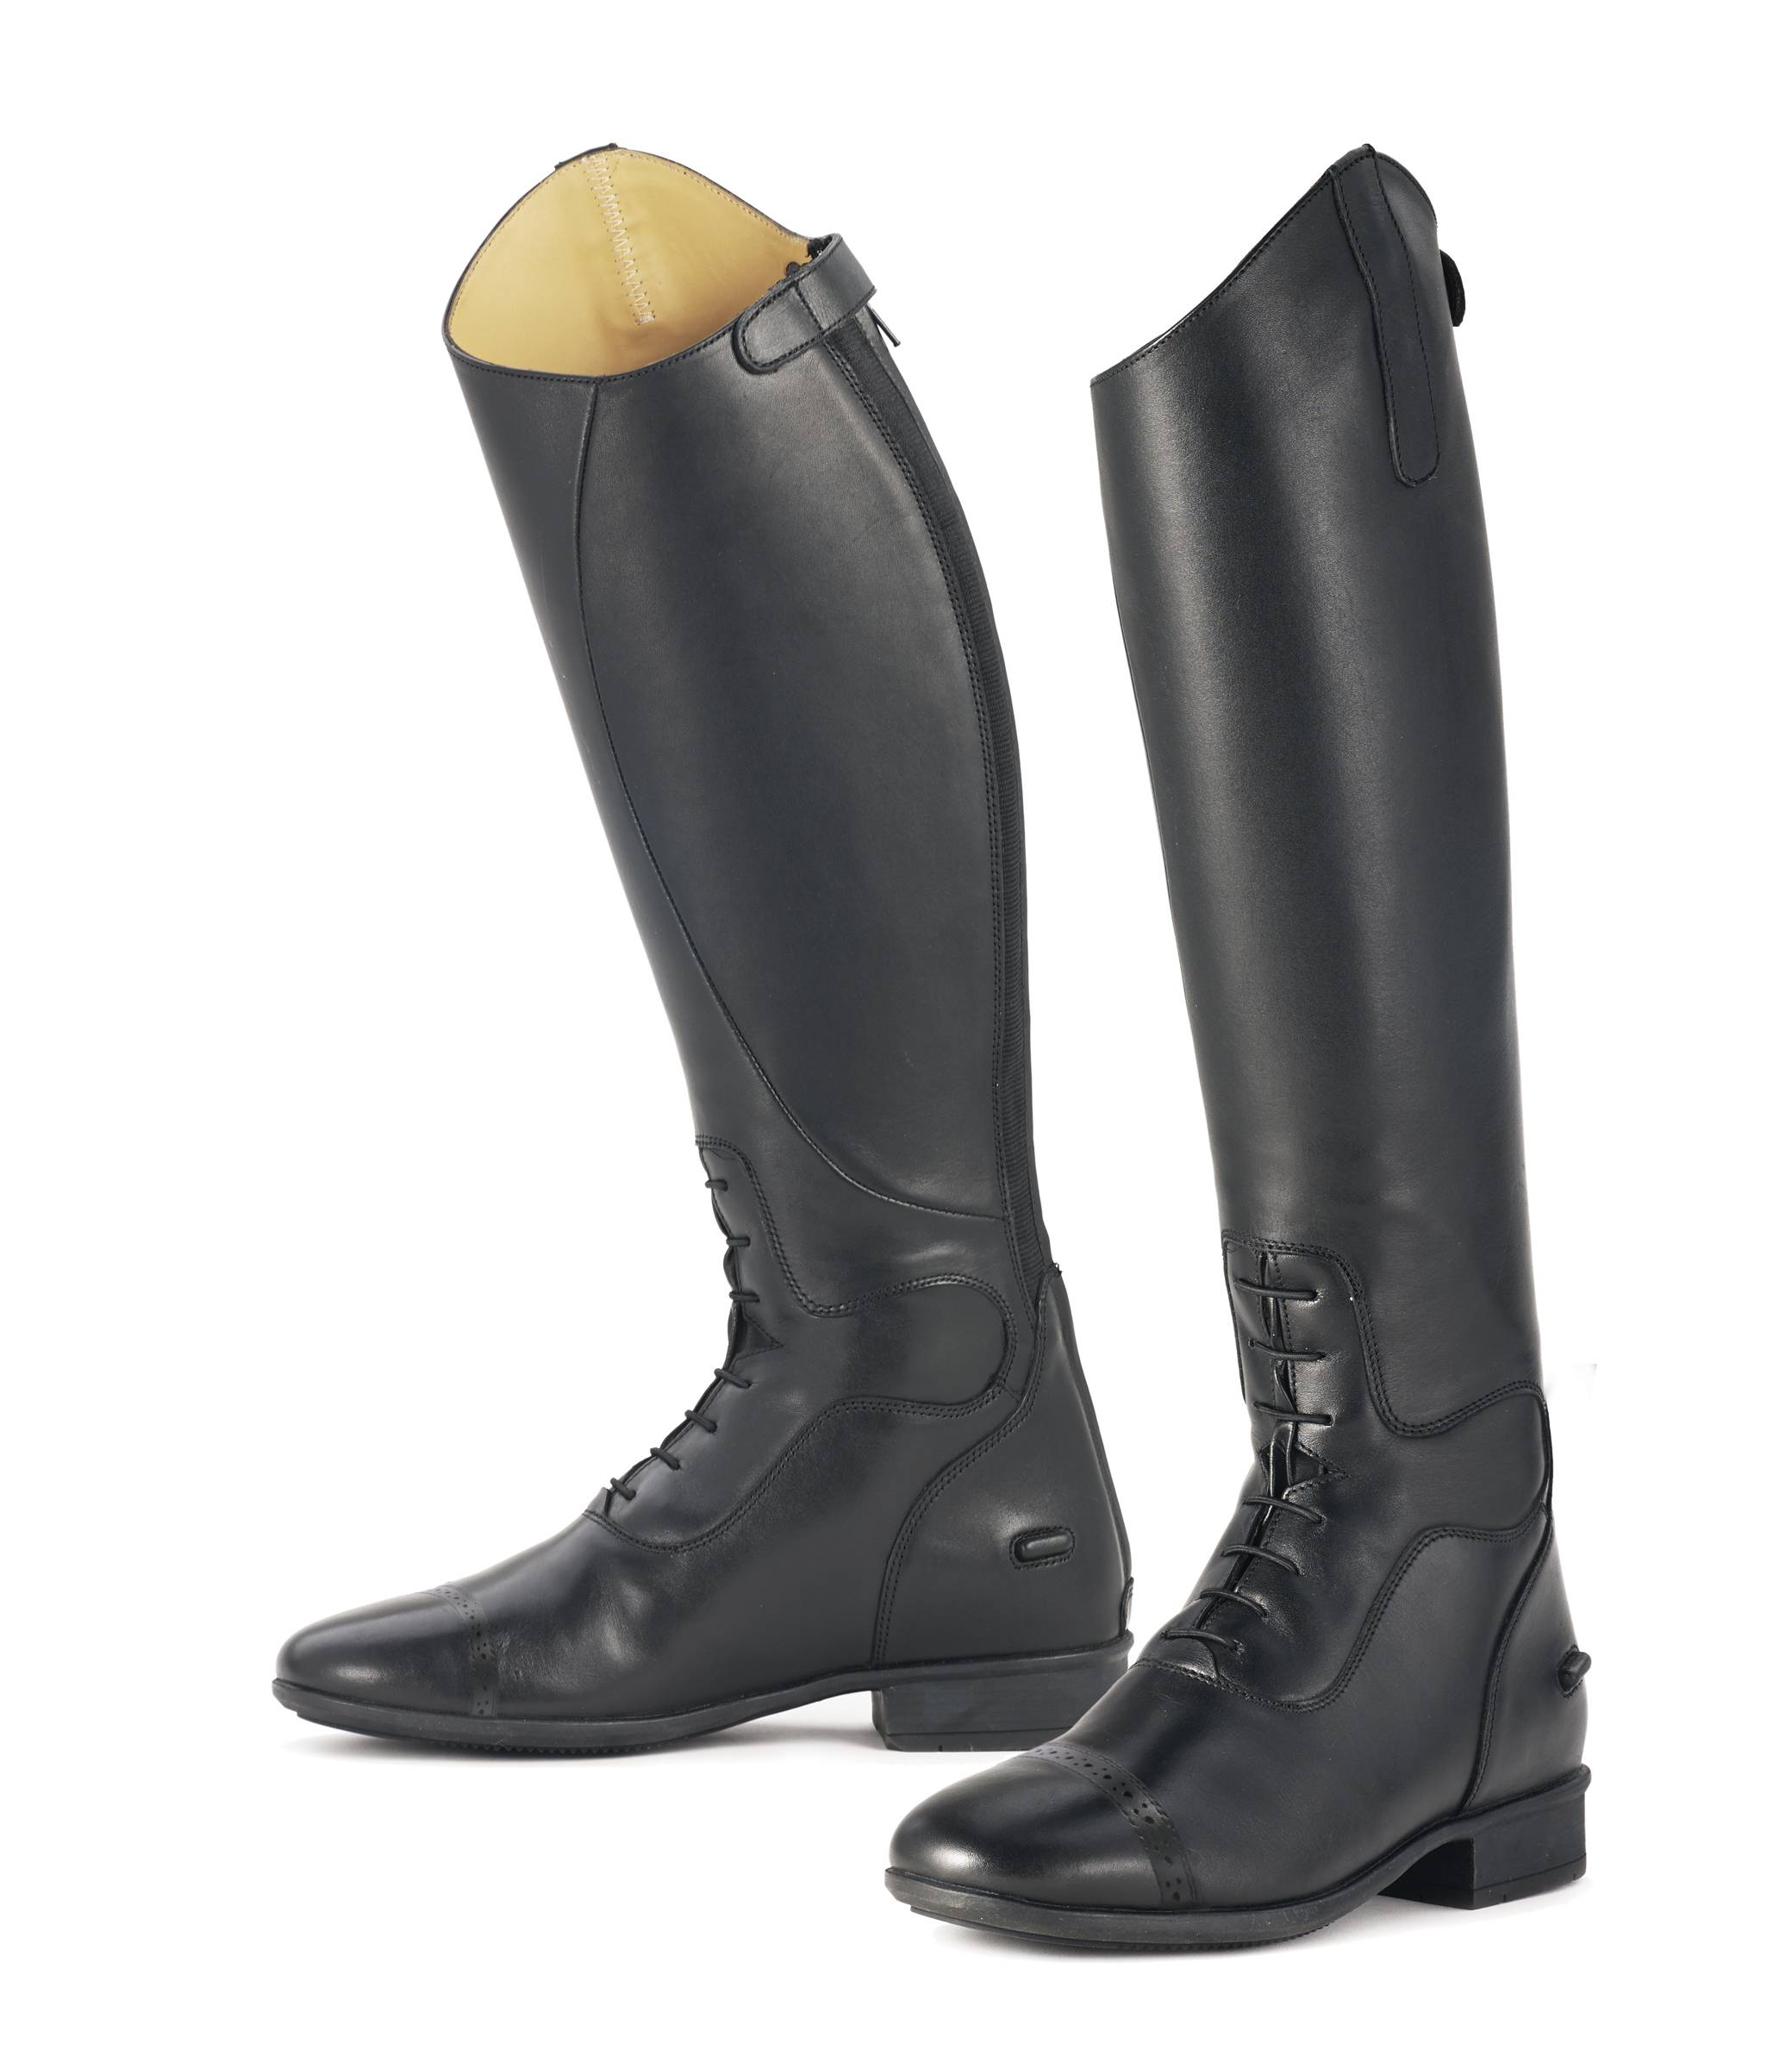 Ovation Finesse Concours Field Boots - Ladies